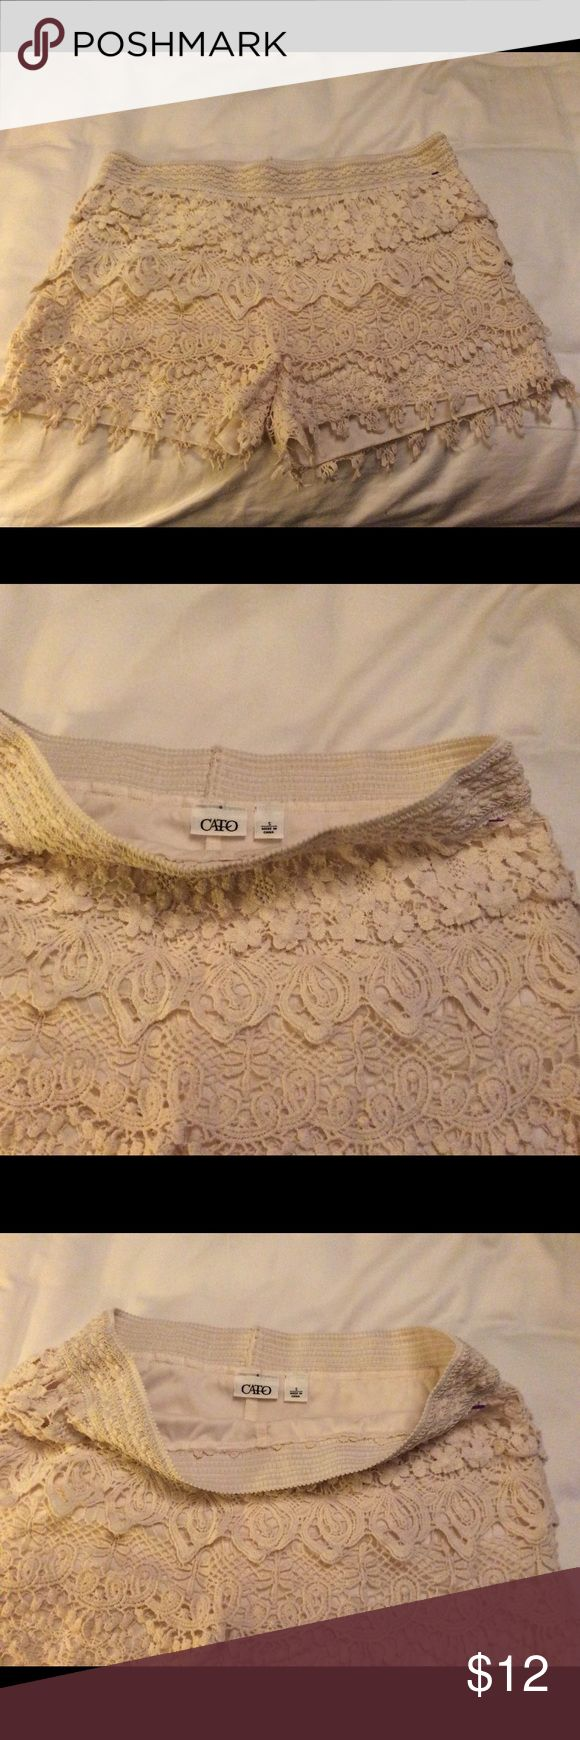 Lace shorts Cream colored lace shorts! Dress them up or dress them down......so cute and comfortable! Cato Shorts